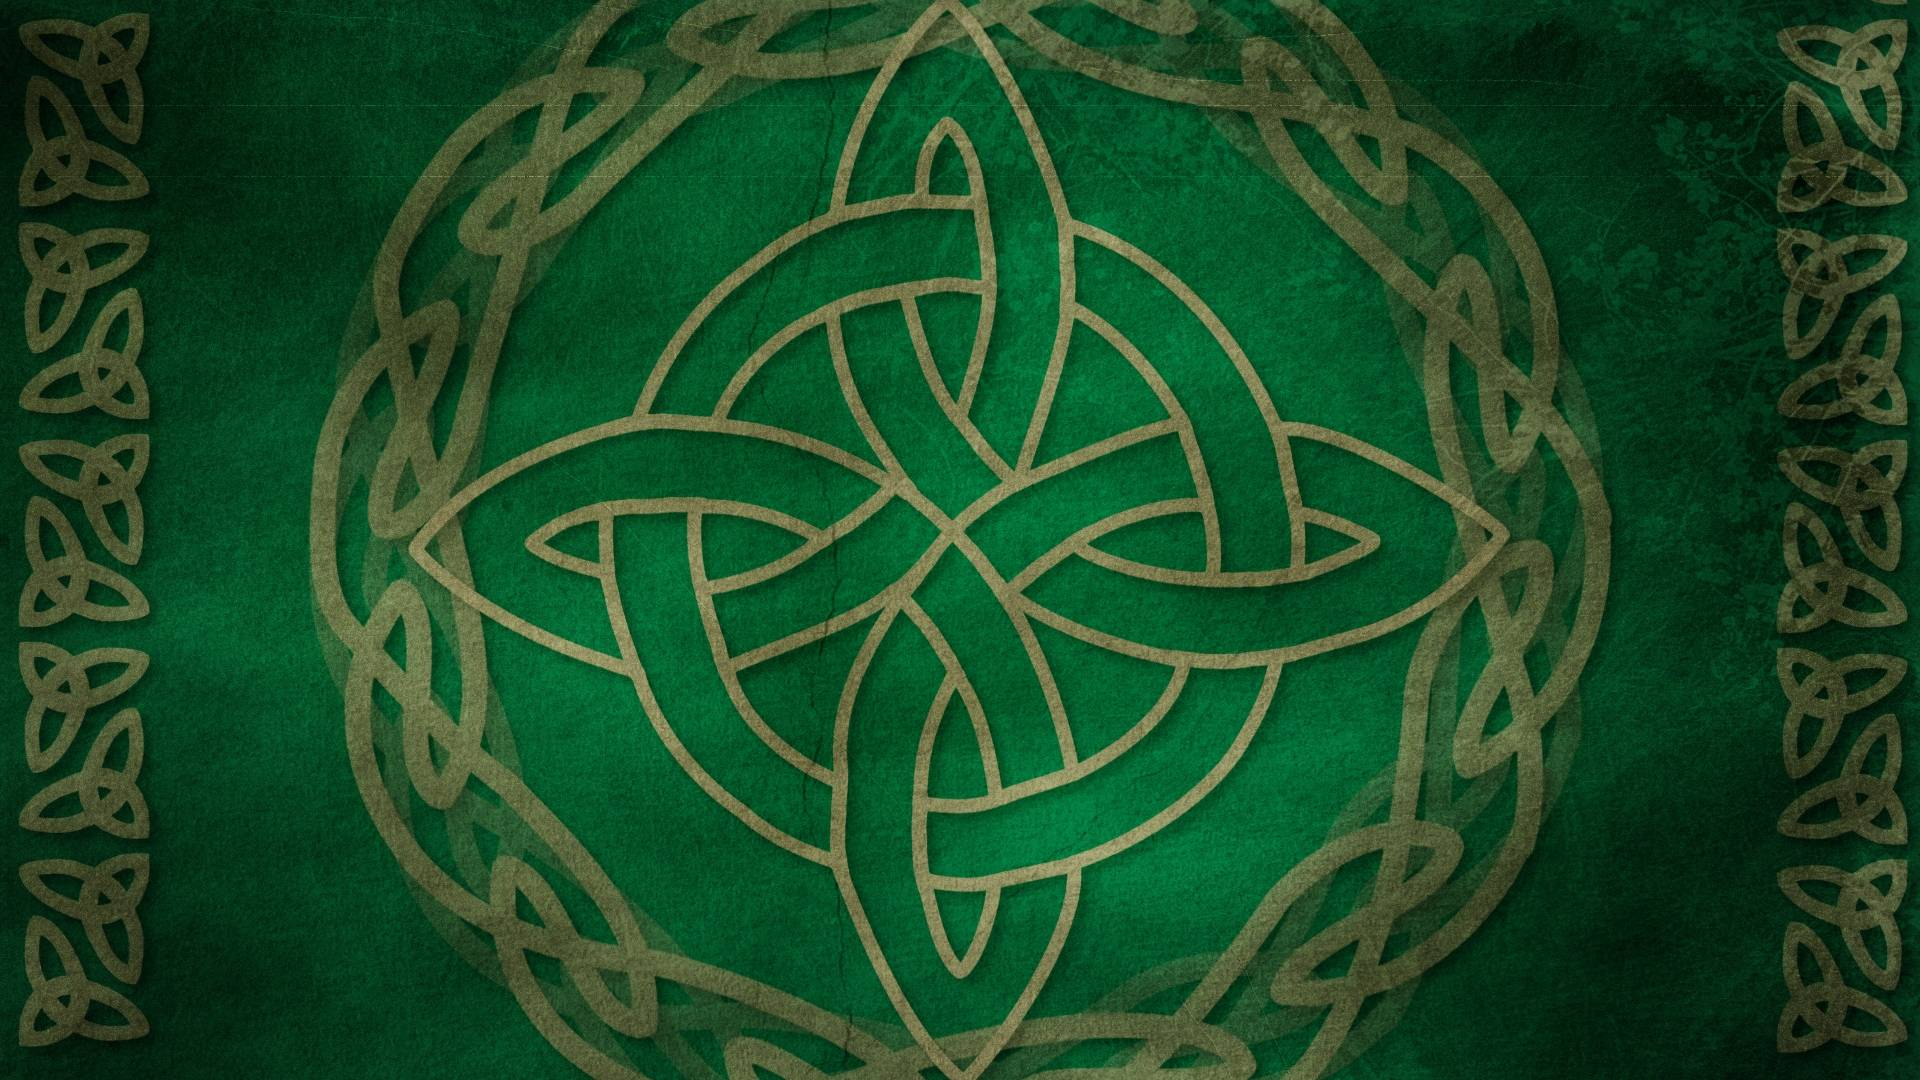 Green Celtic Cross Wallpaper   Viewing Gallery 1920x1080